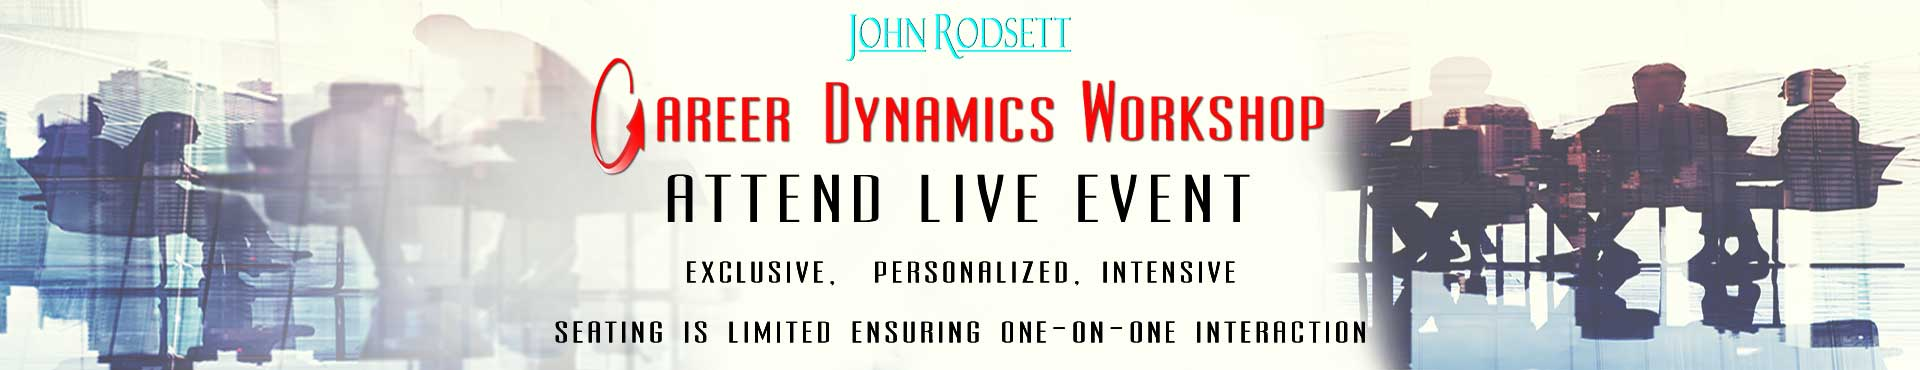 Attend-Live-Event_rev_Career-Dynamics (2)